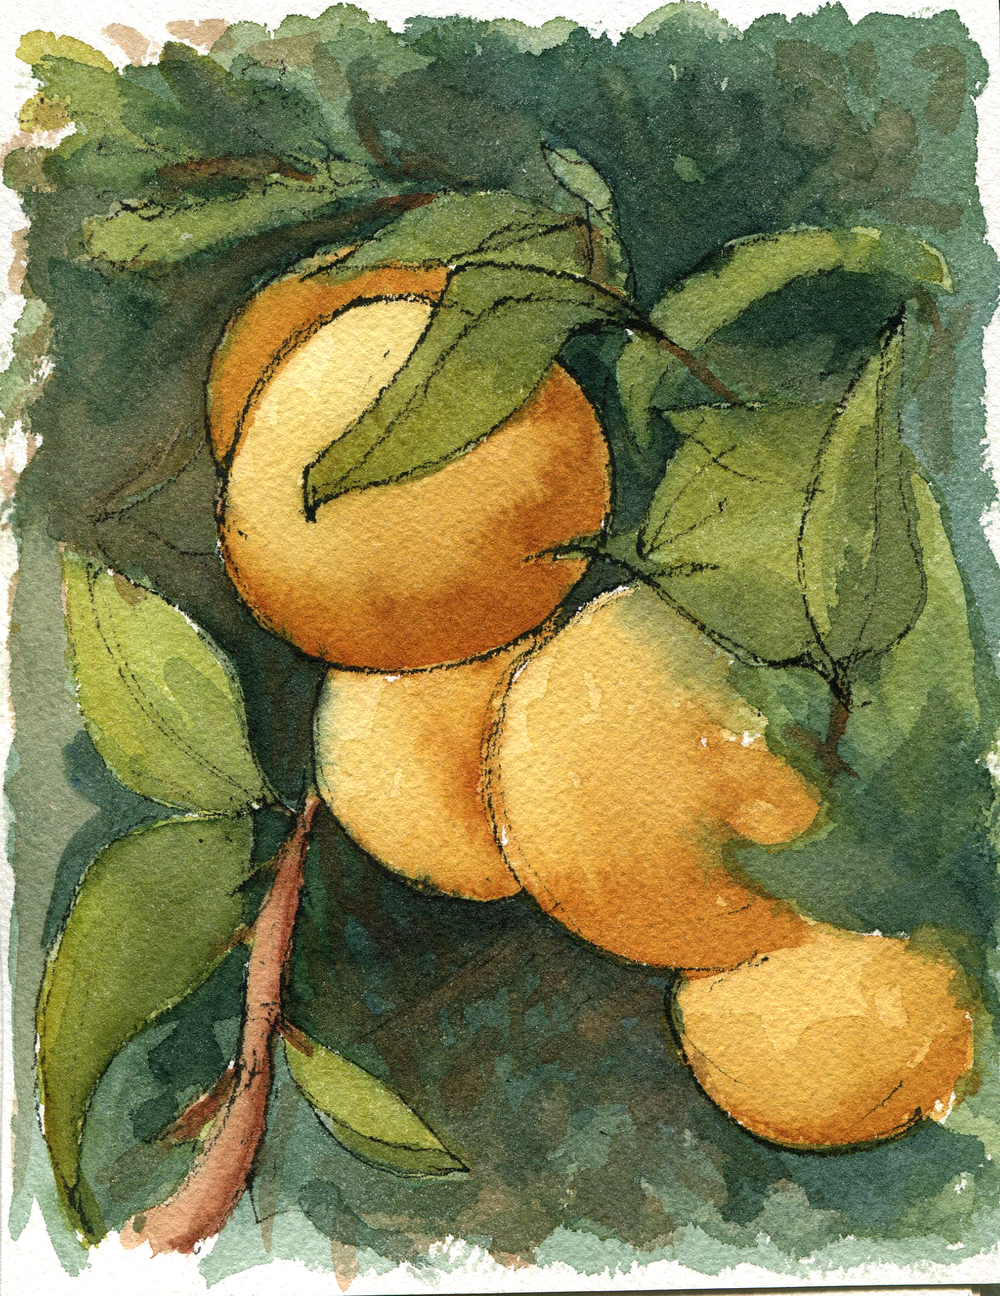 Watercolor sketch of oranges on the vine